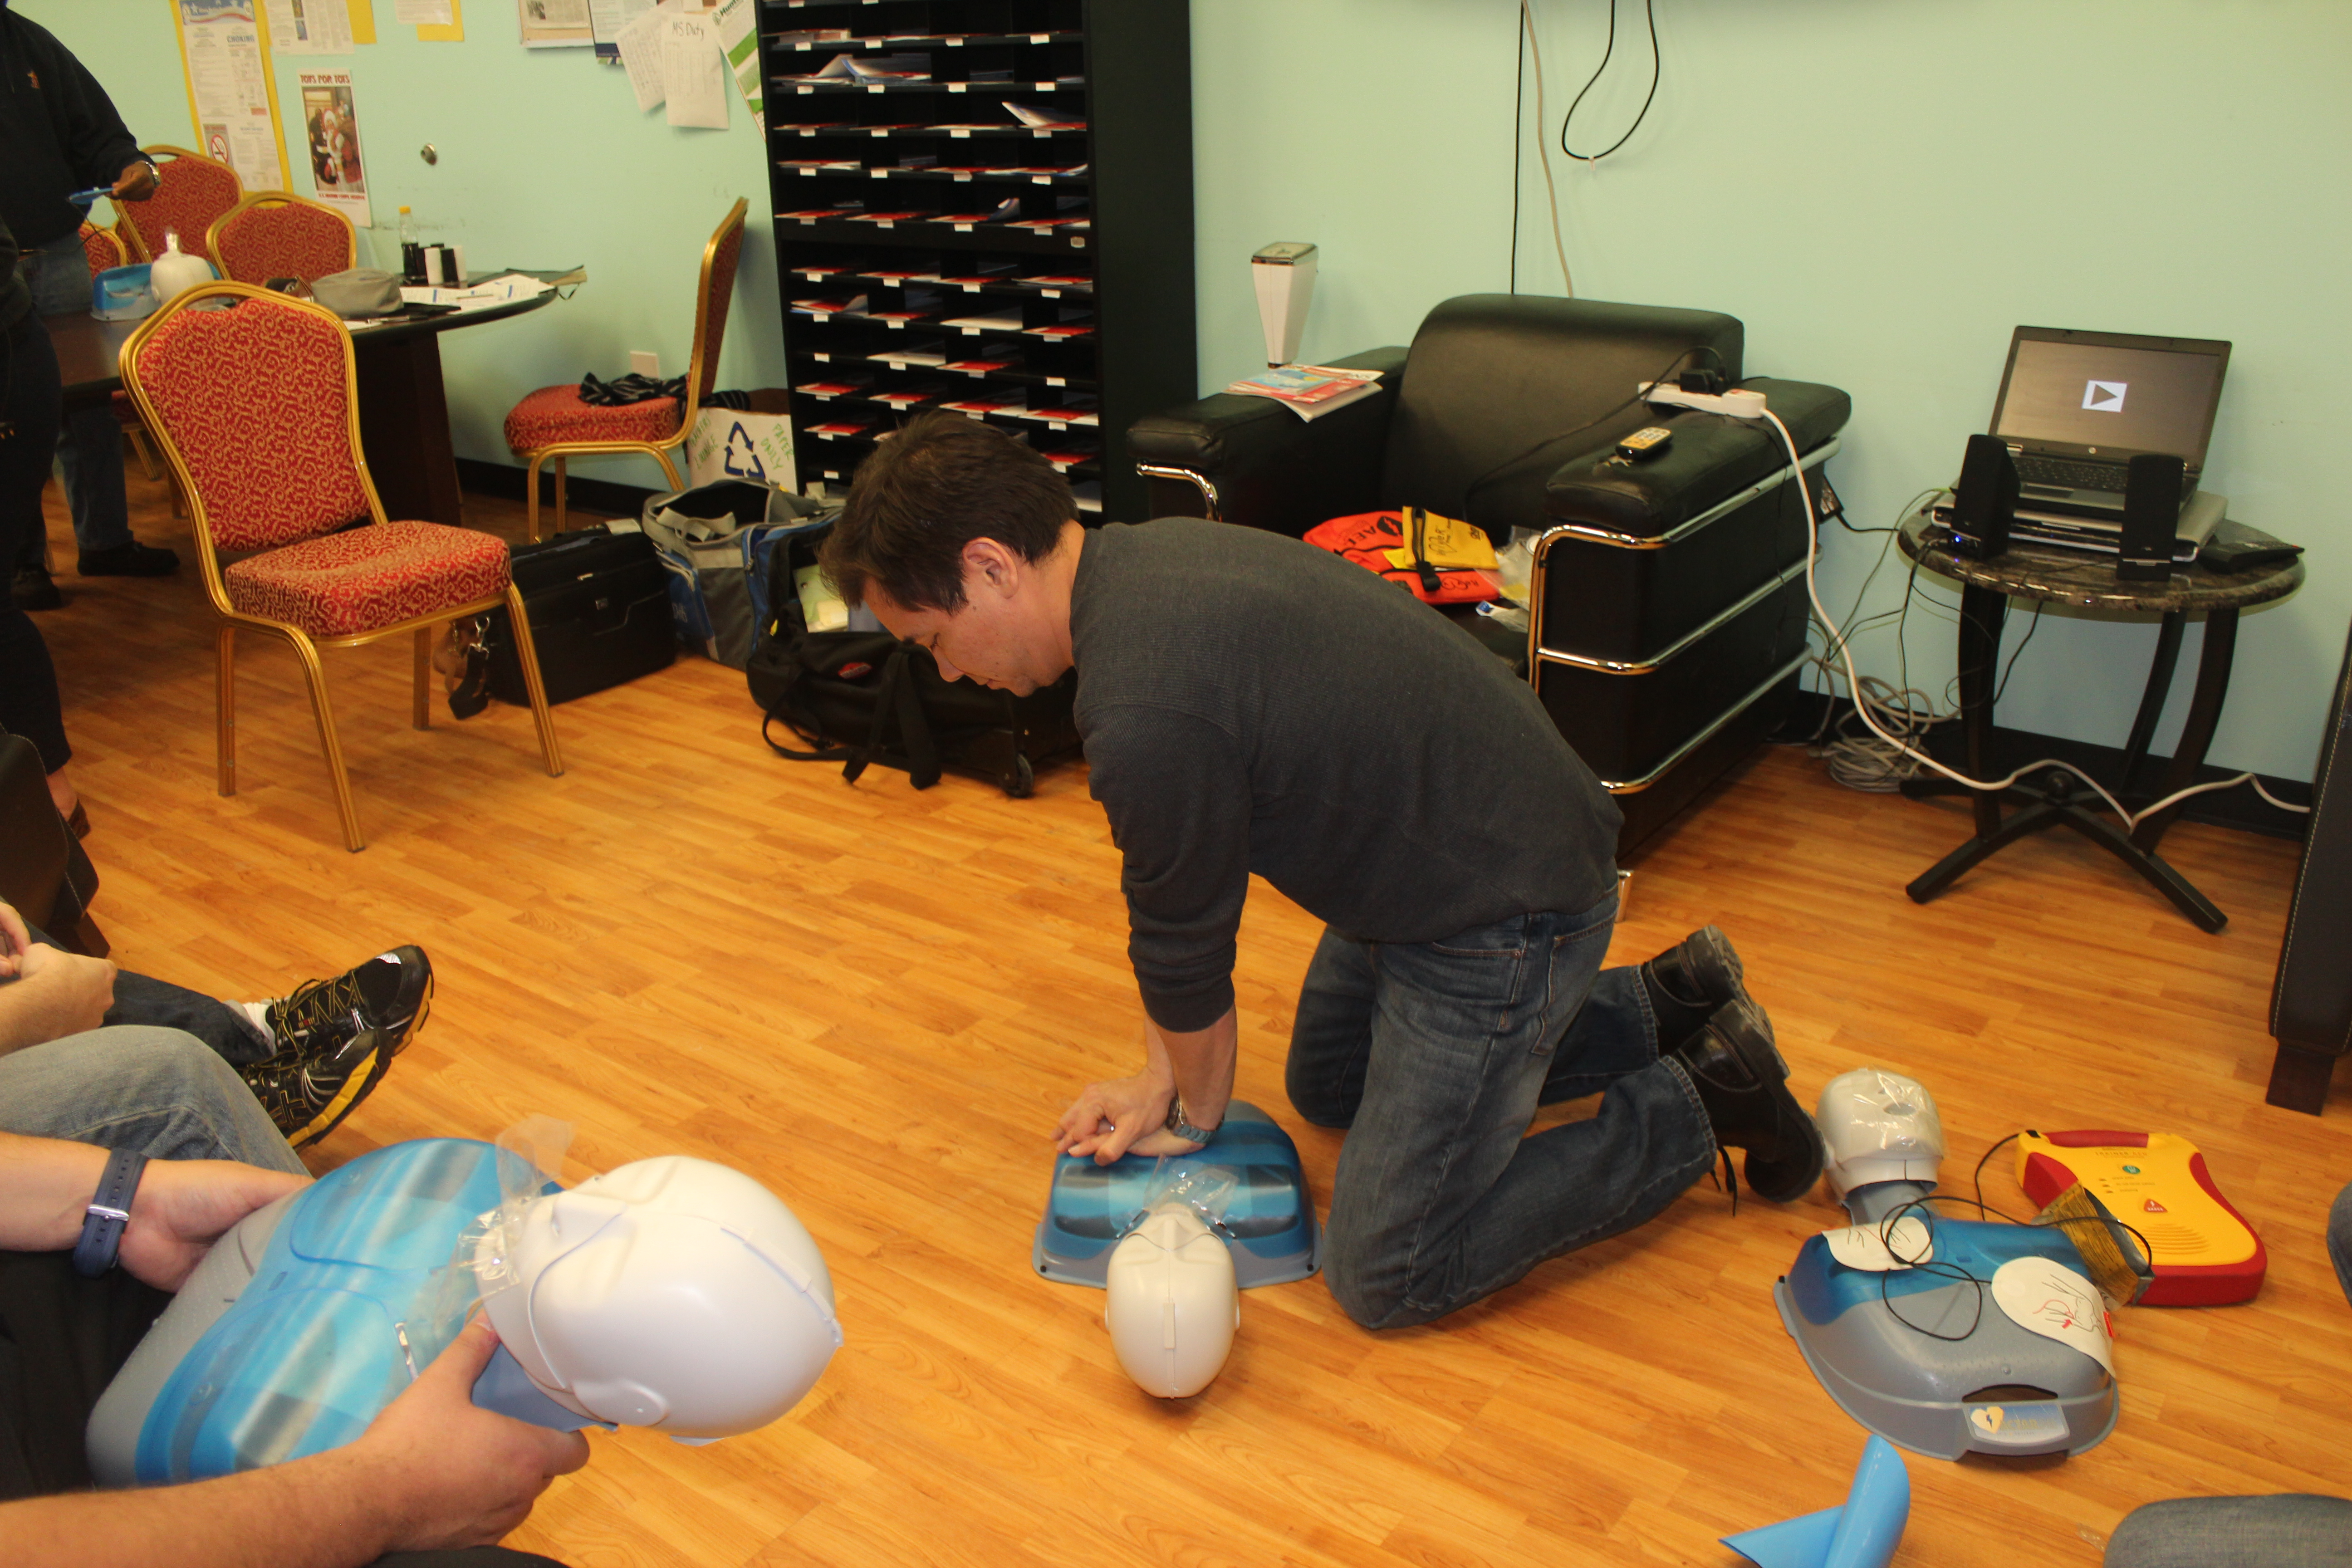 Cpr training at cmsa chicago math and science academy cmsa cmsa staff received training and certification in cpr first aid and auto electrical defibrillation xflitez Images